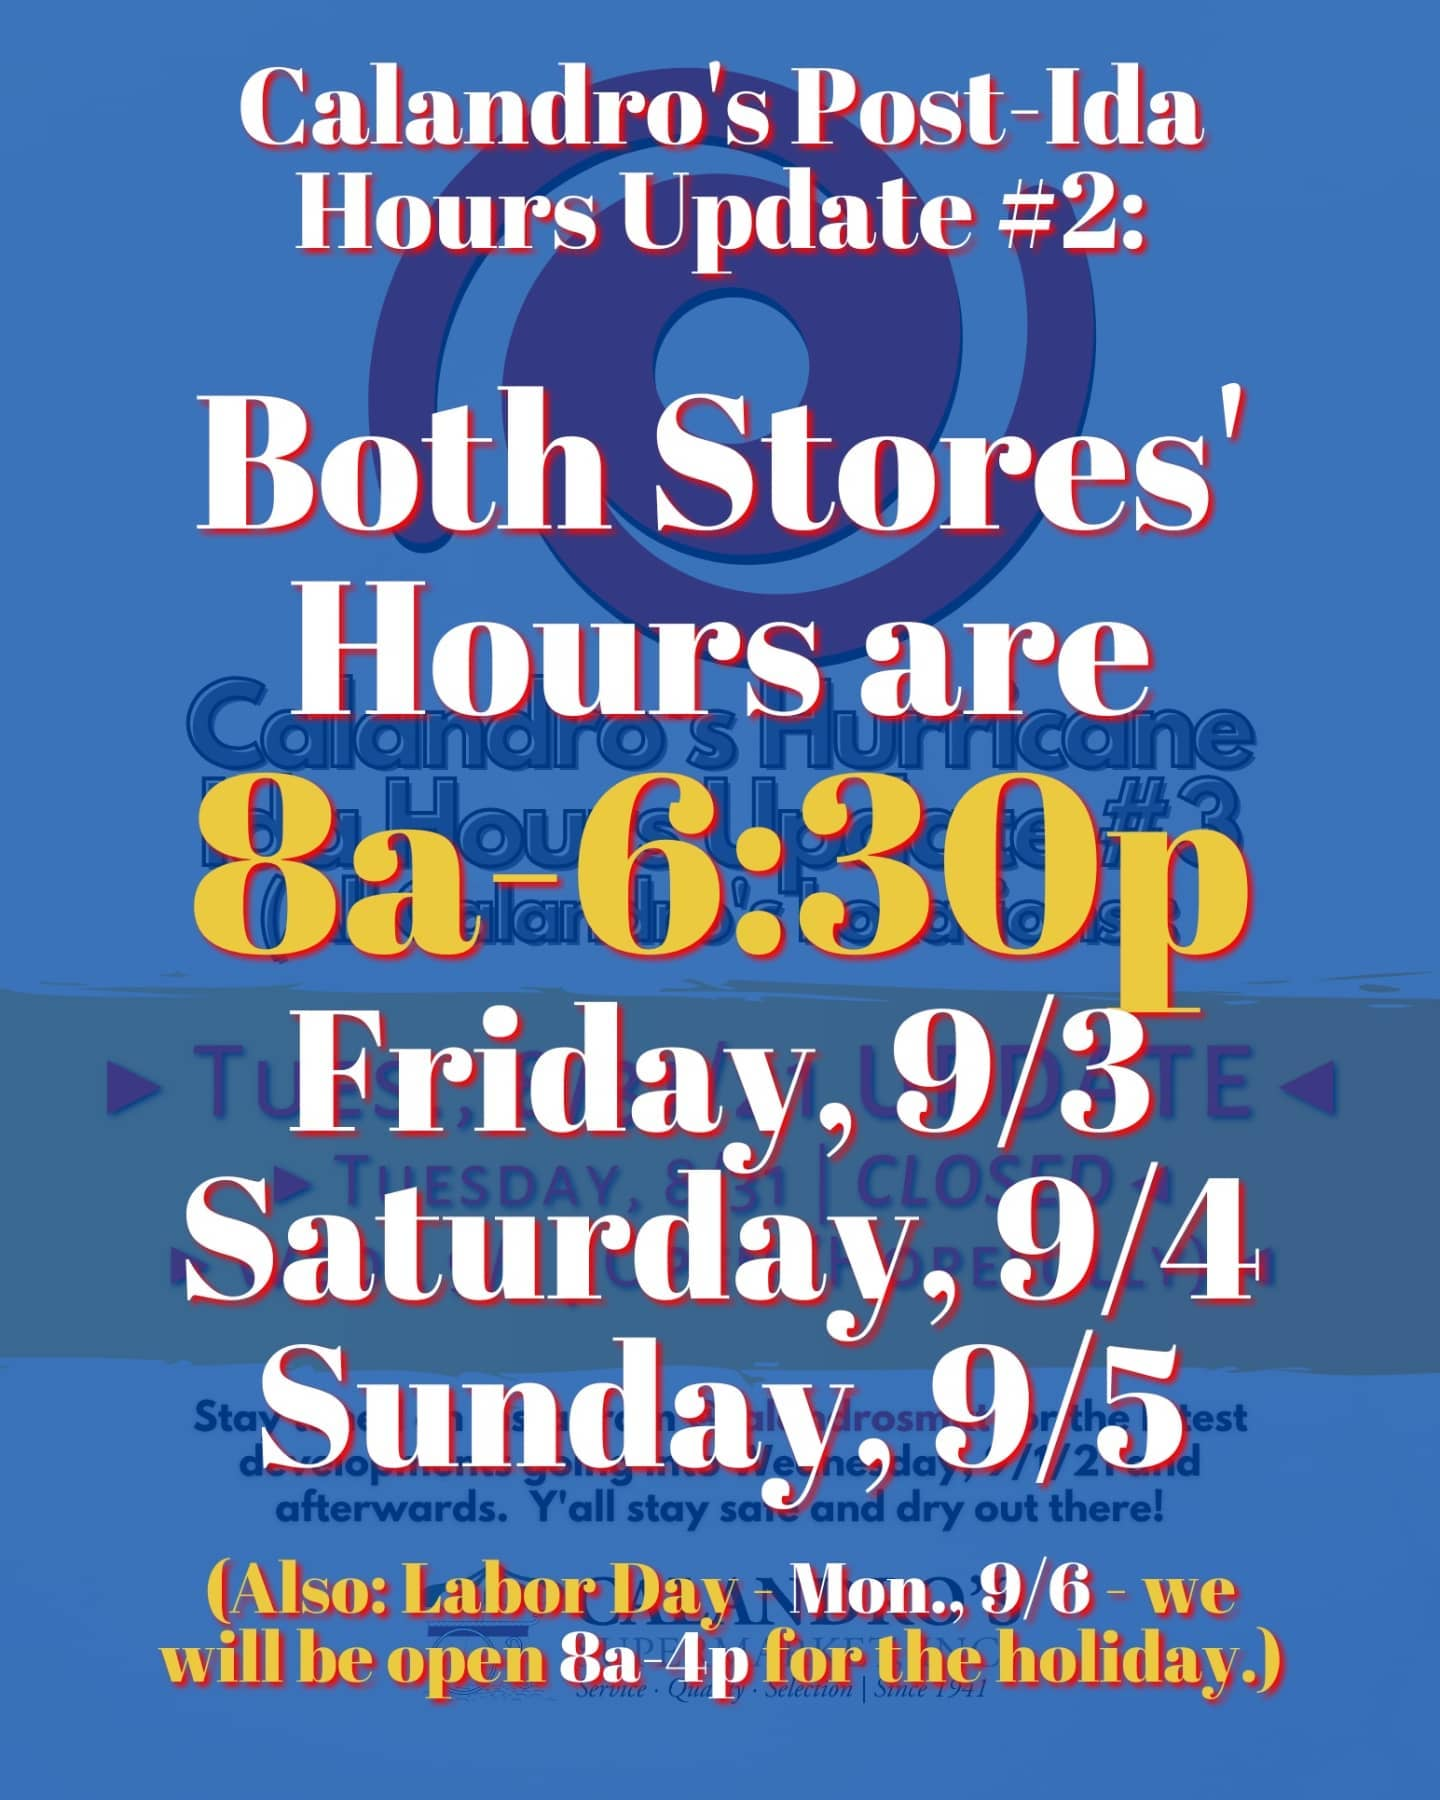 Another day…another Calandro's Post-Ida Hours Update:  Both Calandro's will be sticking with the 8a-6:30p